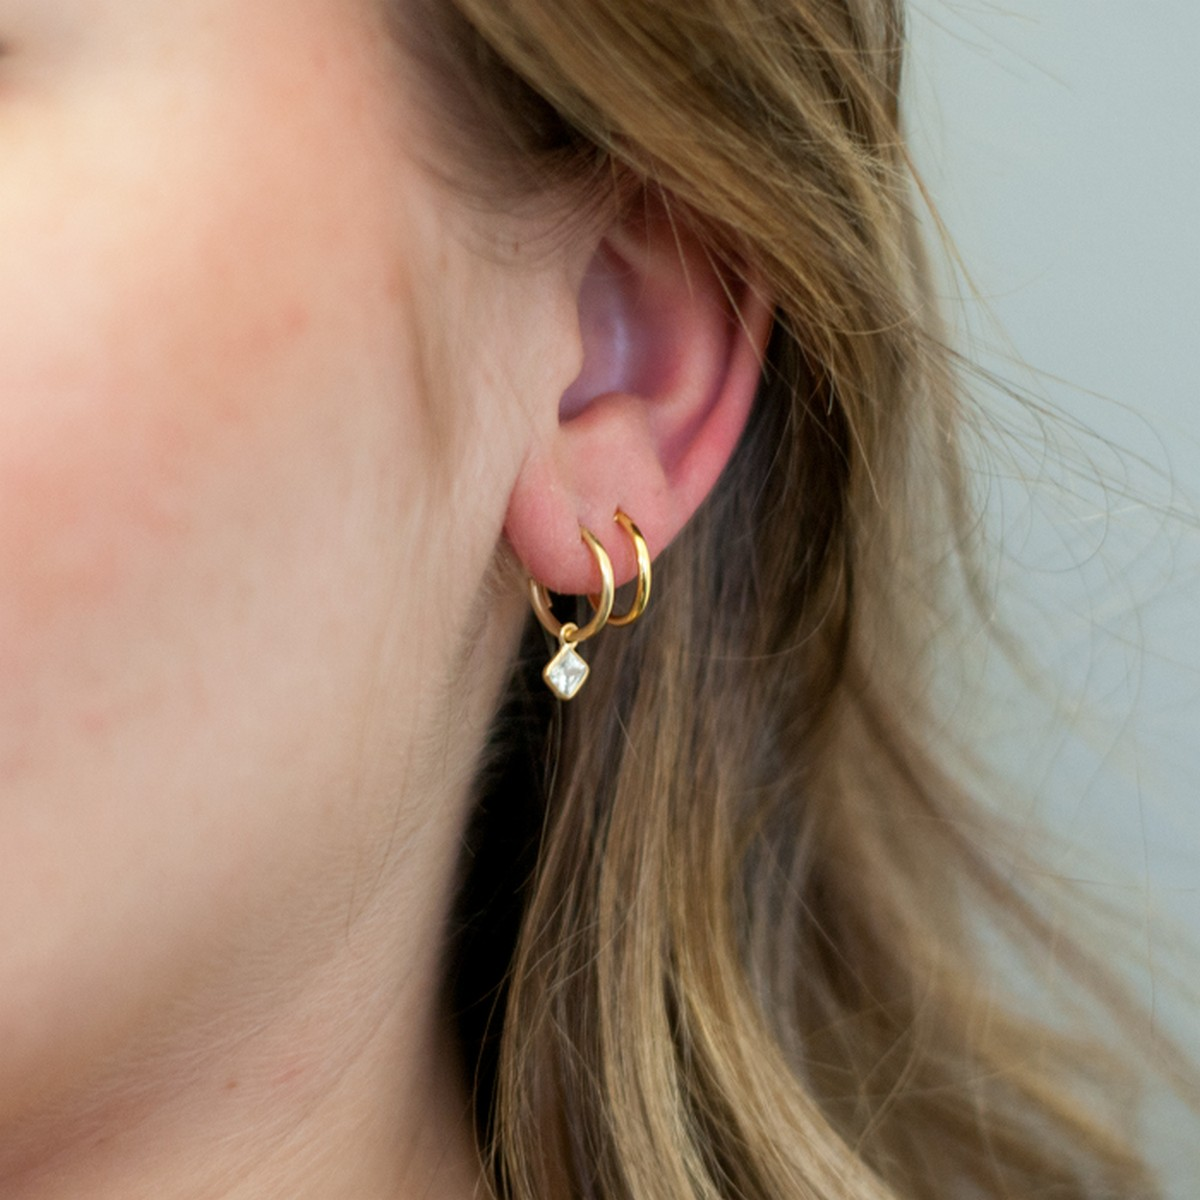 Basic hoops | 8, 10 of 12 mm | Oorbellen goldplated 925 zilver